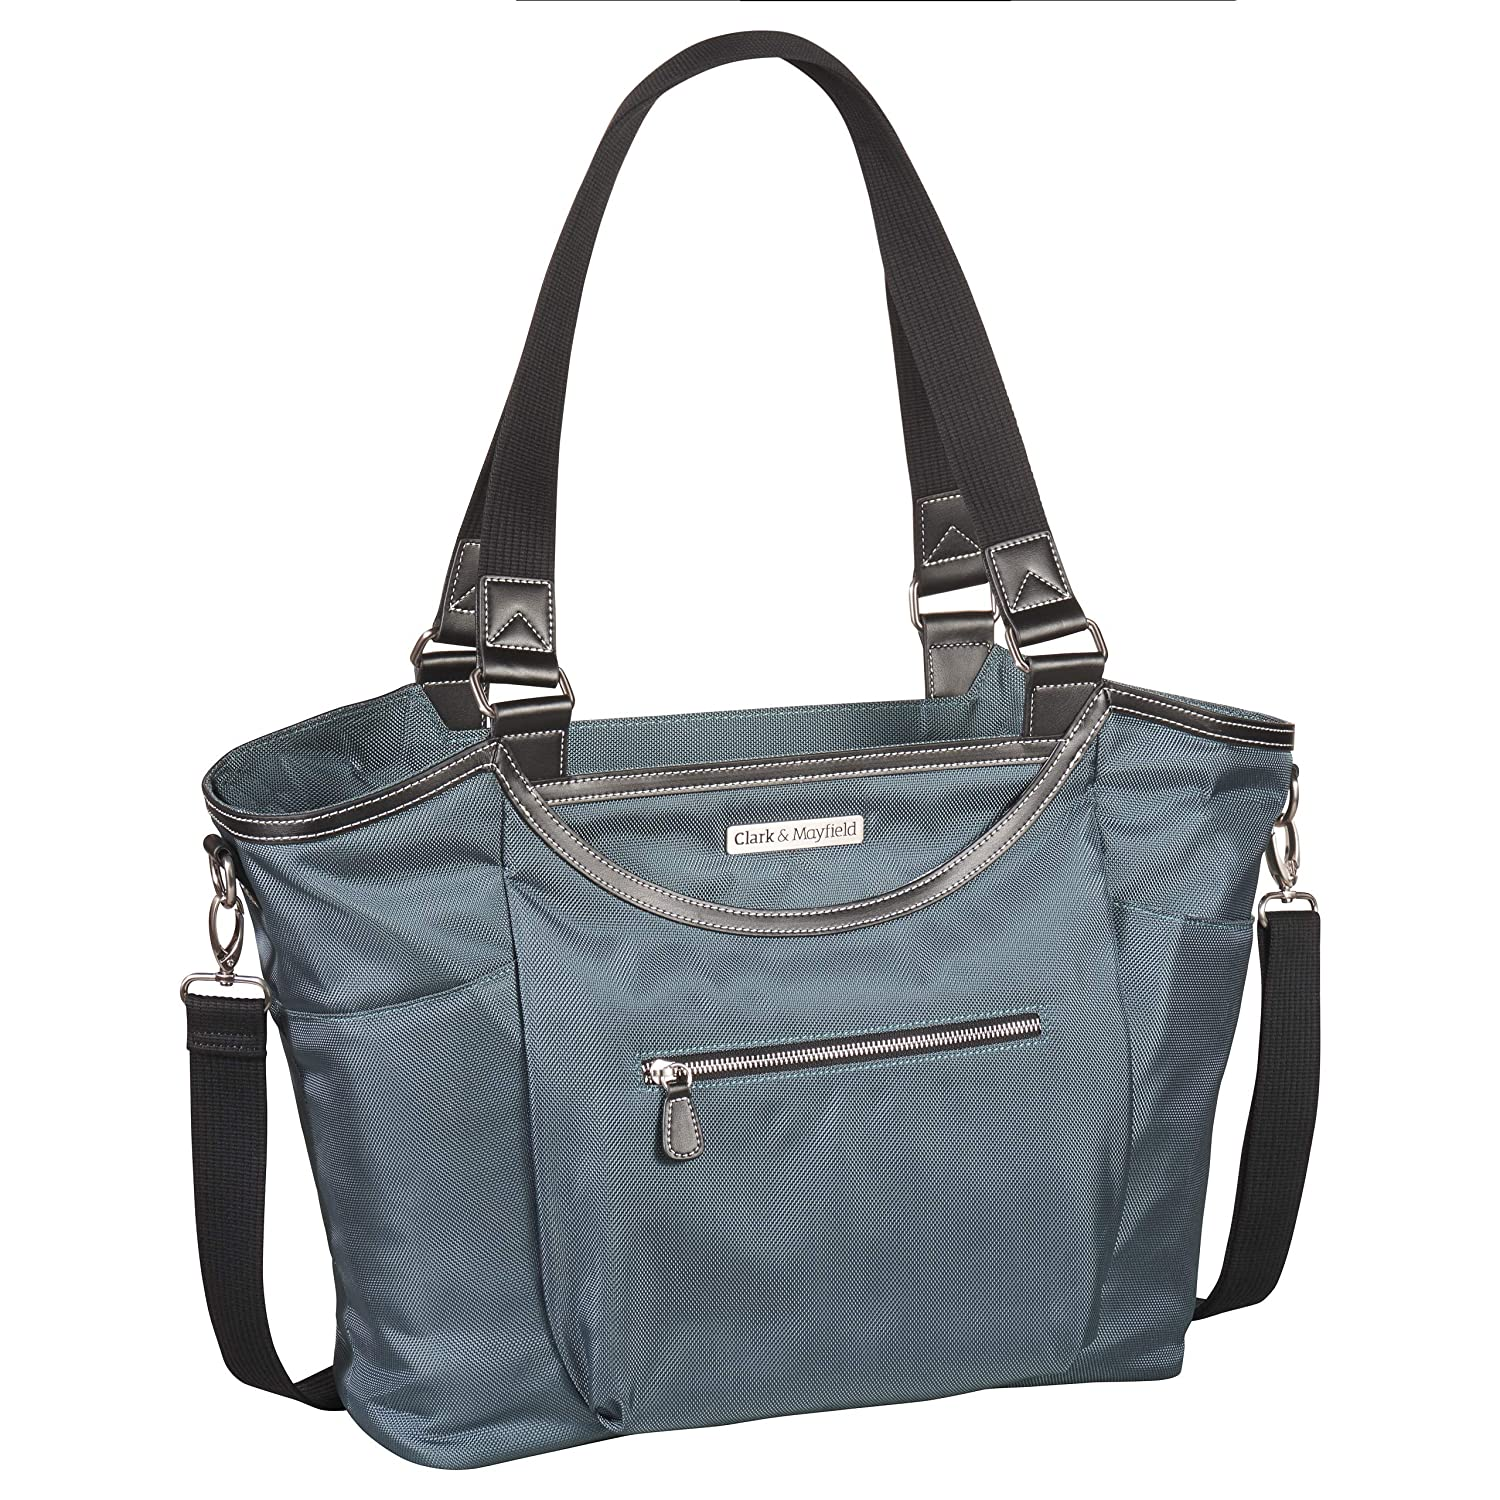 "Amazon.com: Clark & Mayfield Women's Bellevue Laptop Handbag (Fits laptops  up to 18.4"", Deep Teal): Computers & Accessories"